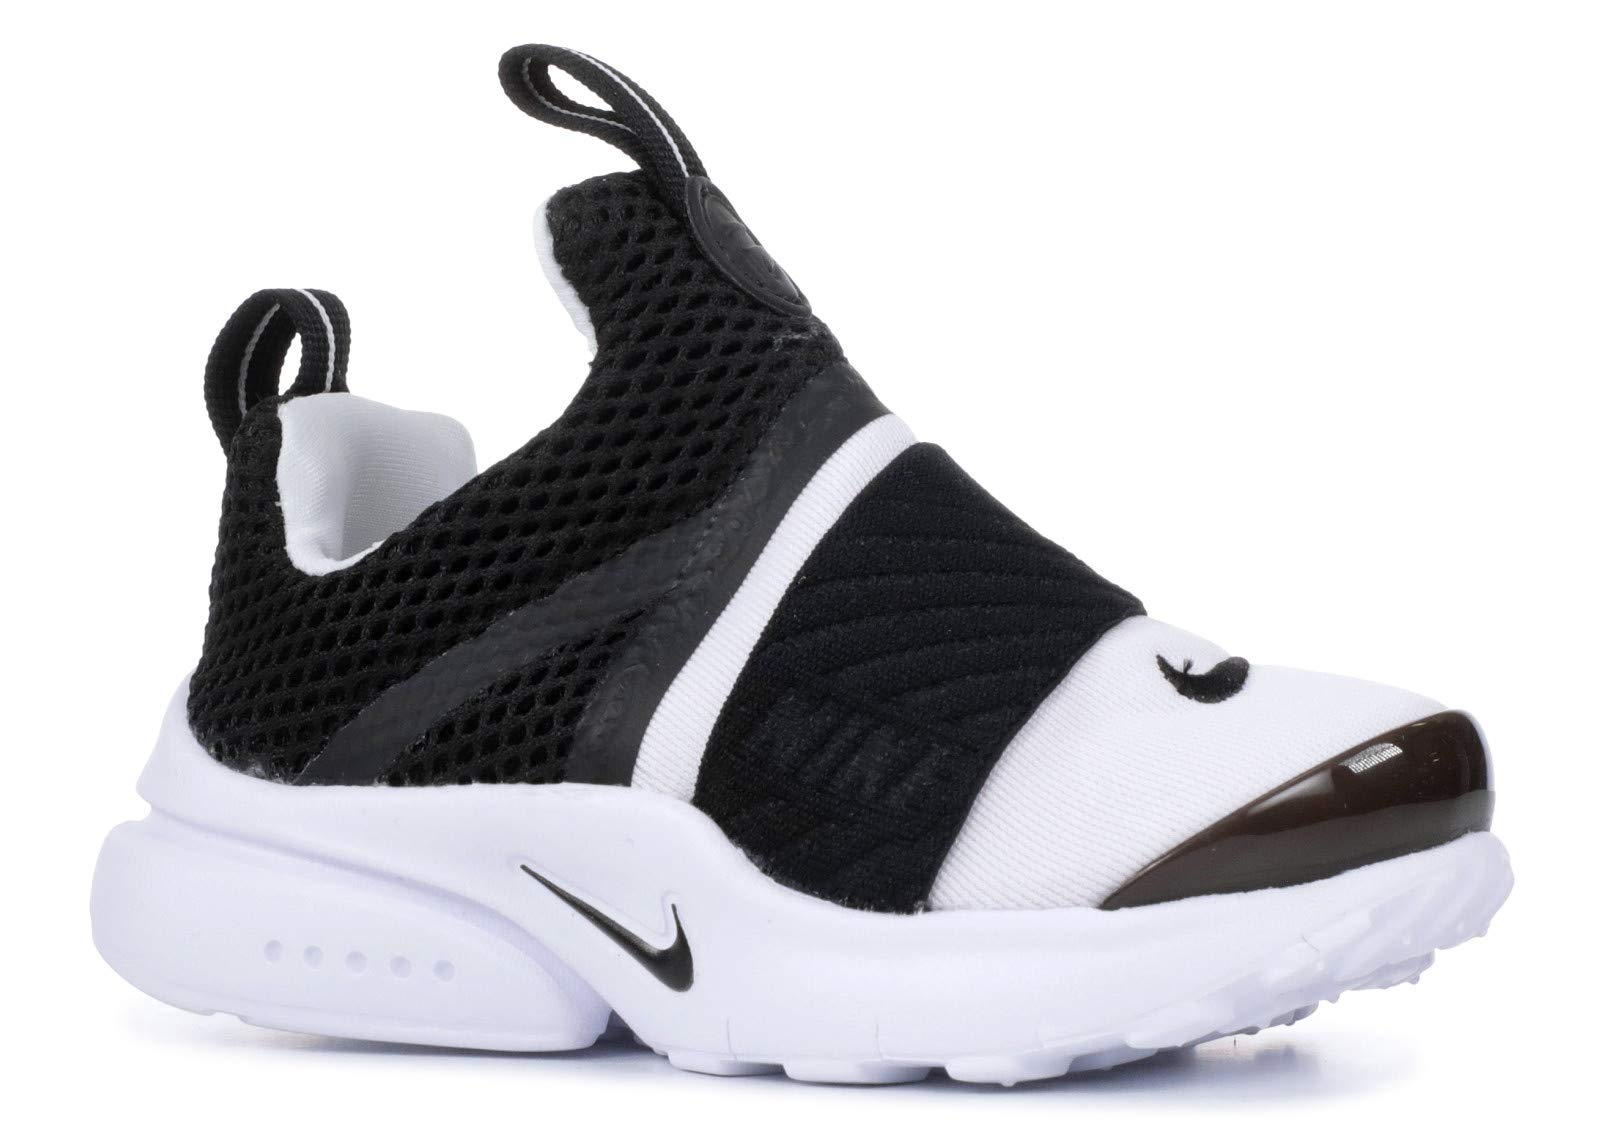 afd950413ad9 Galleon - Nike Presto Extreme Toddler s Running Shoes White Black  870019-100 (7 M US)